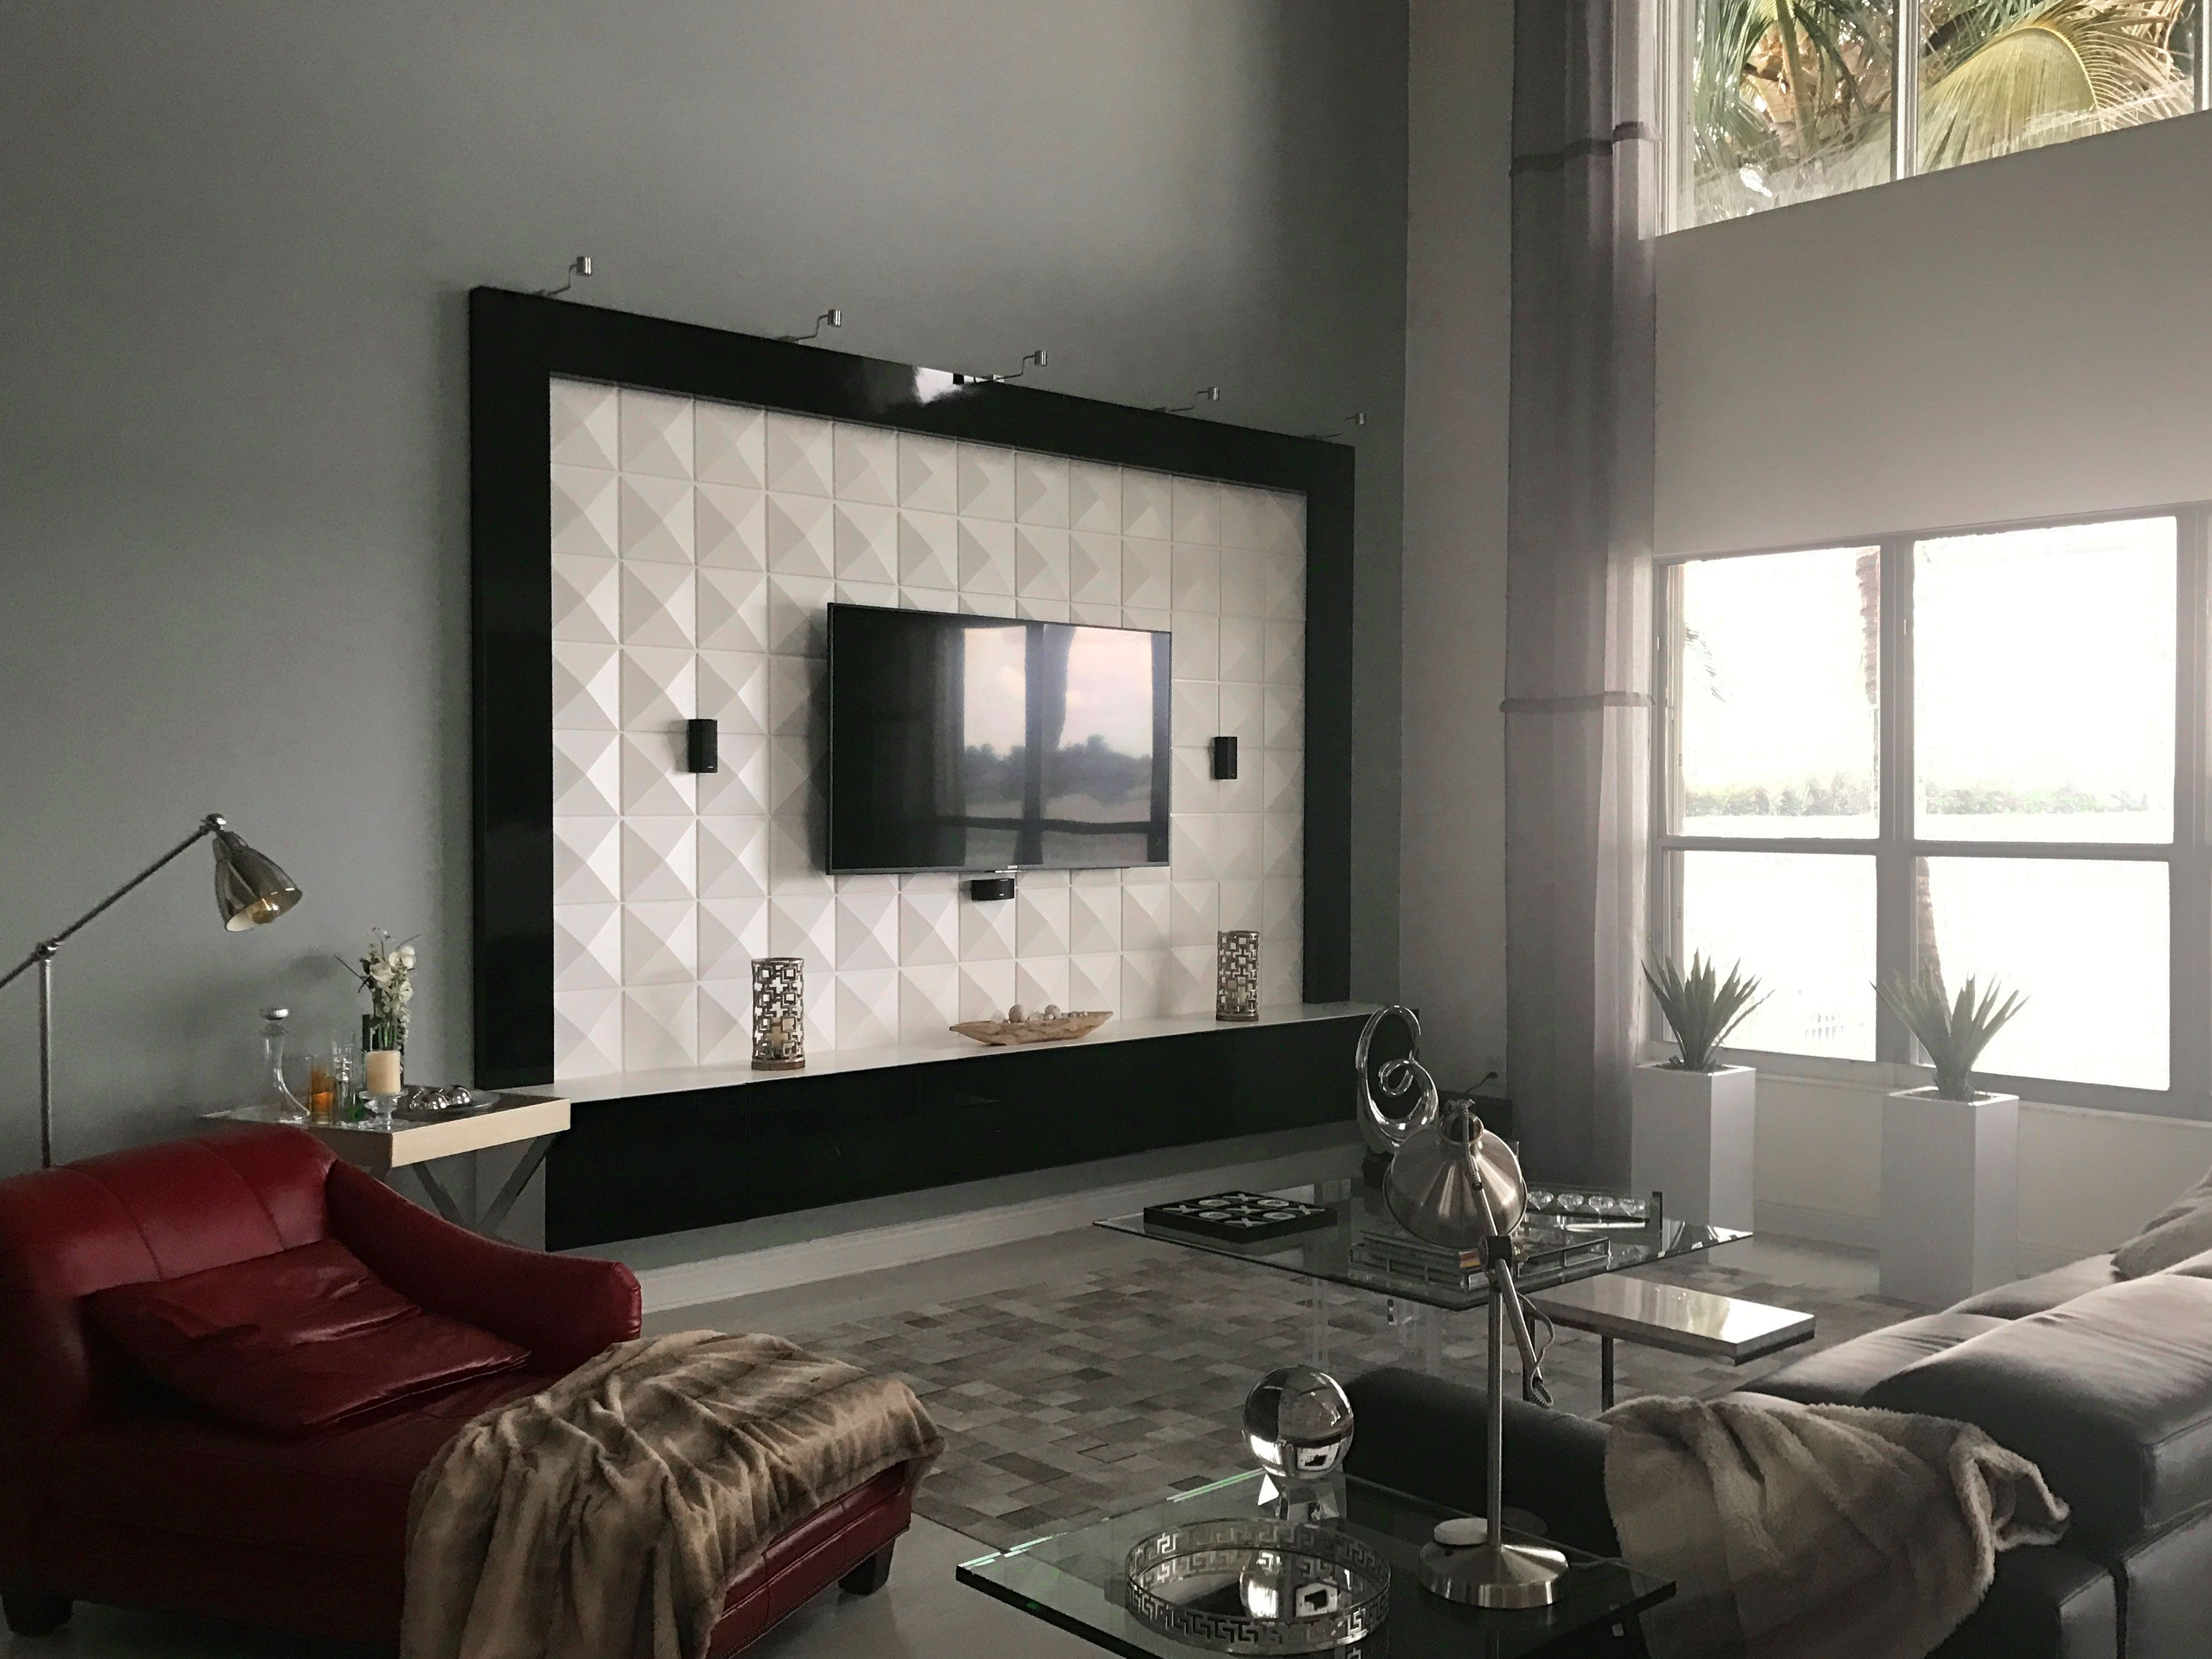 Richmond 3D Wall Panels for Living Room | 3d wall panels, 3d wall and 3d